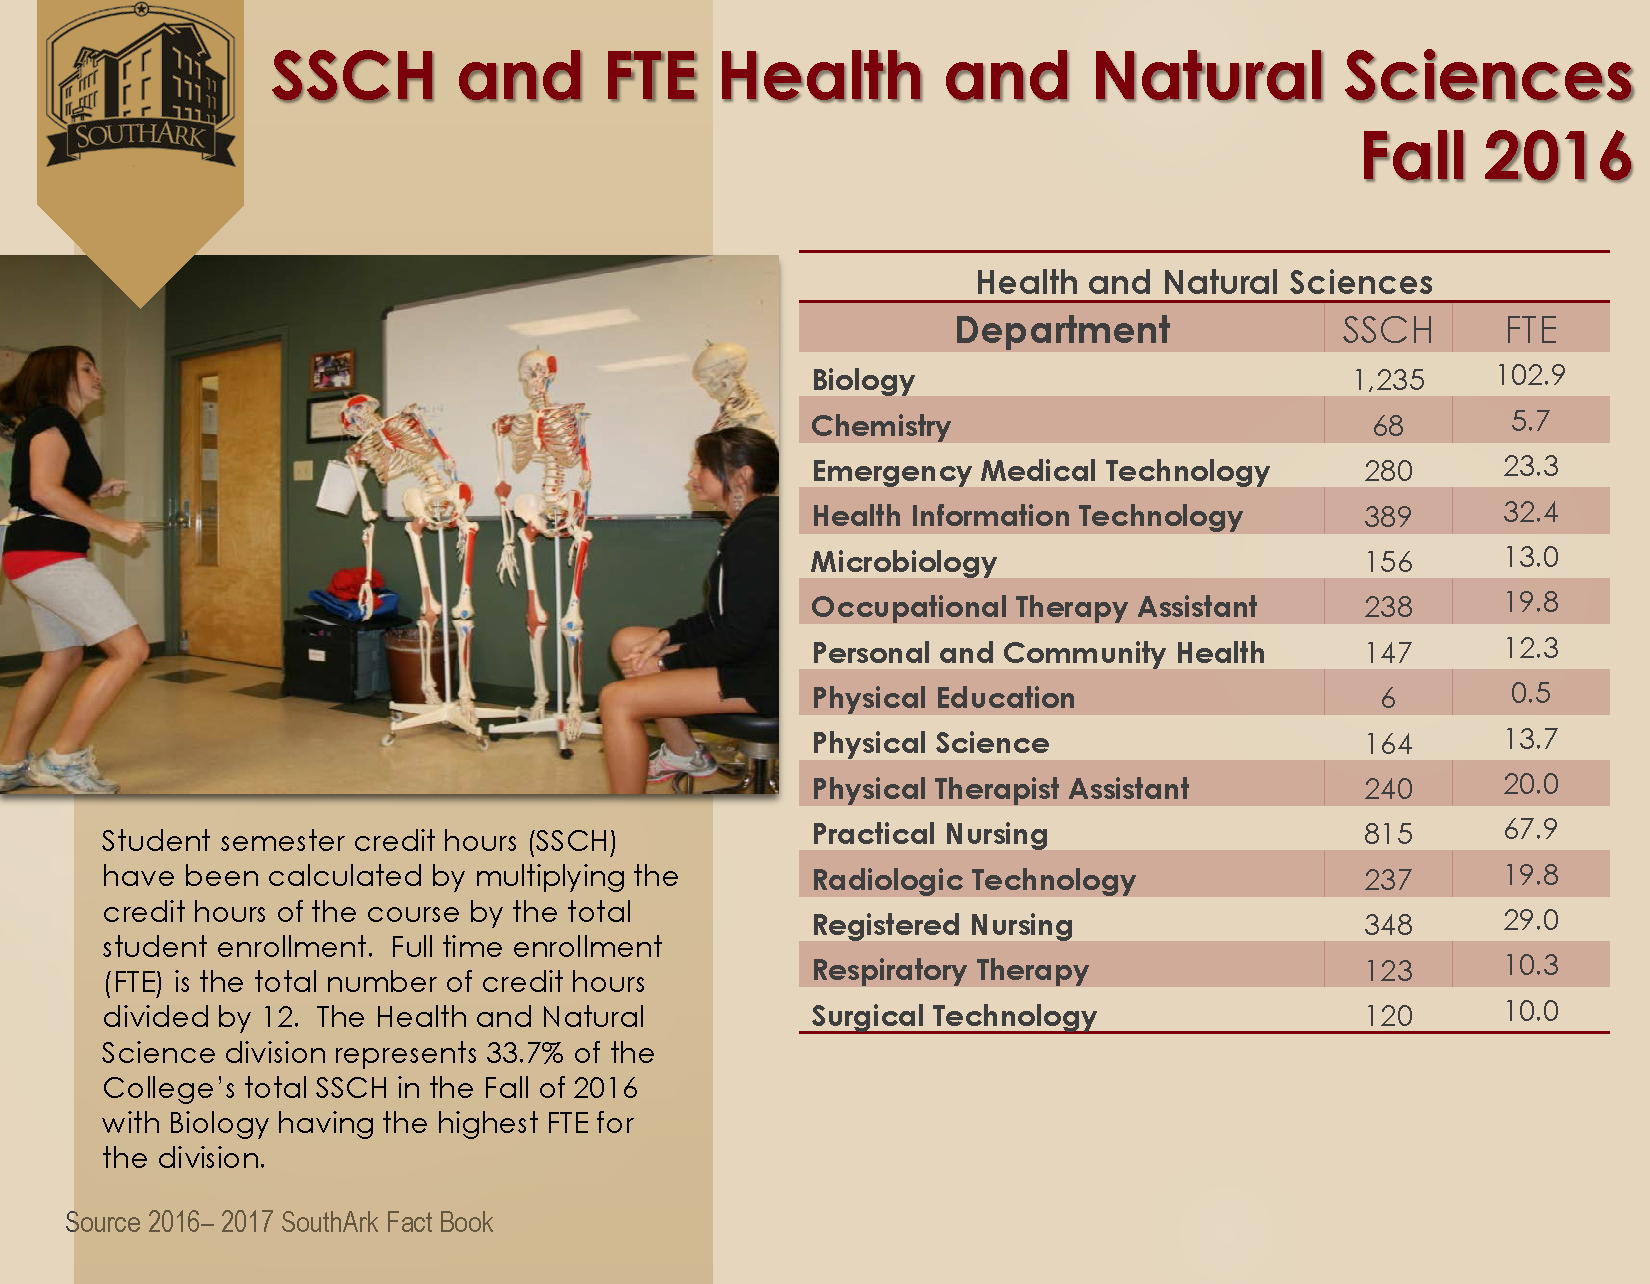 SSCH and FTE HealthNatural Sciences